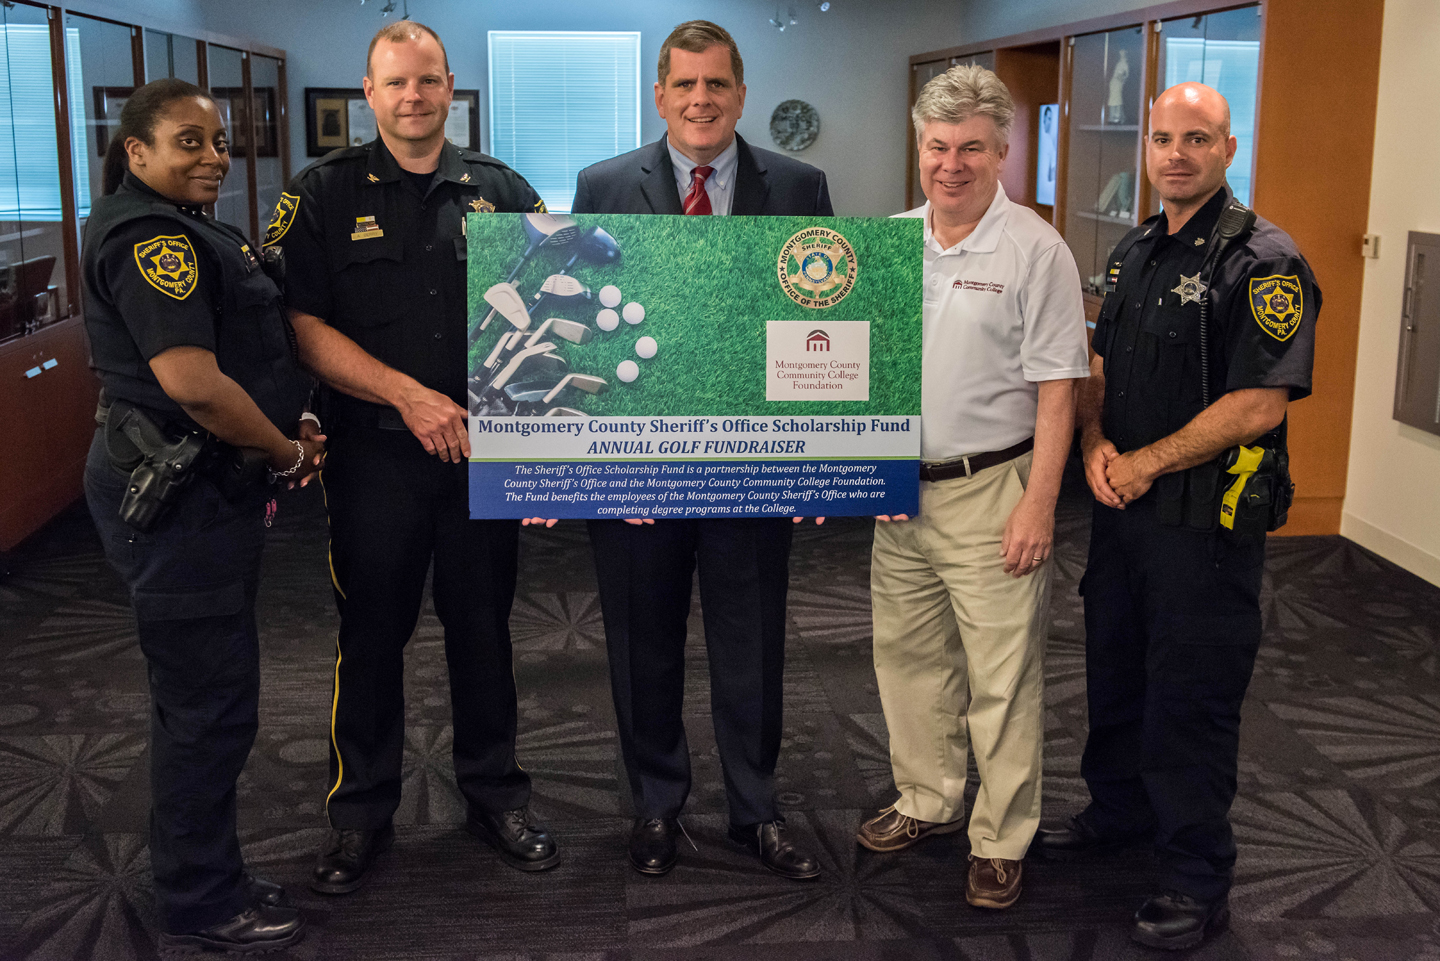 Montco Sheriff to hold 2nd annual Sheriff's Office Scholarship Fund golf event